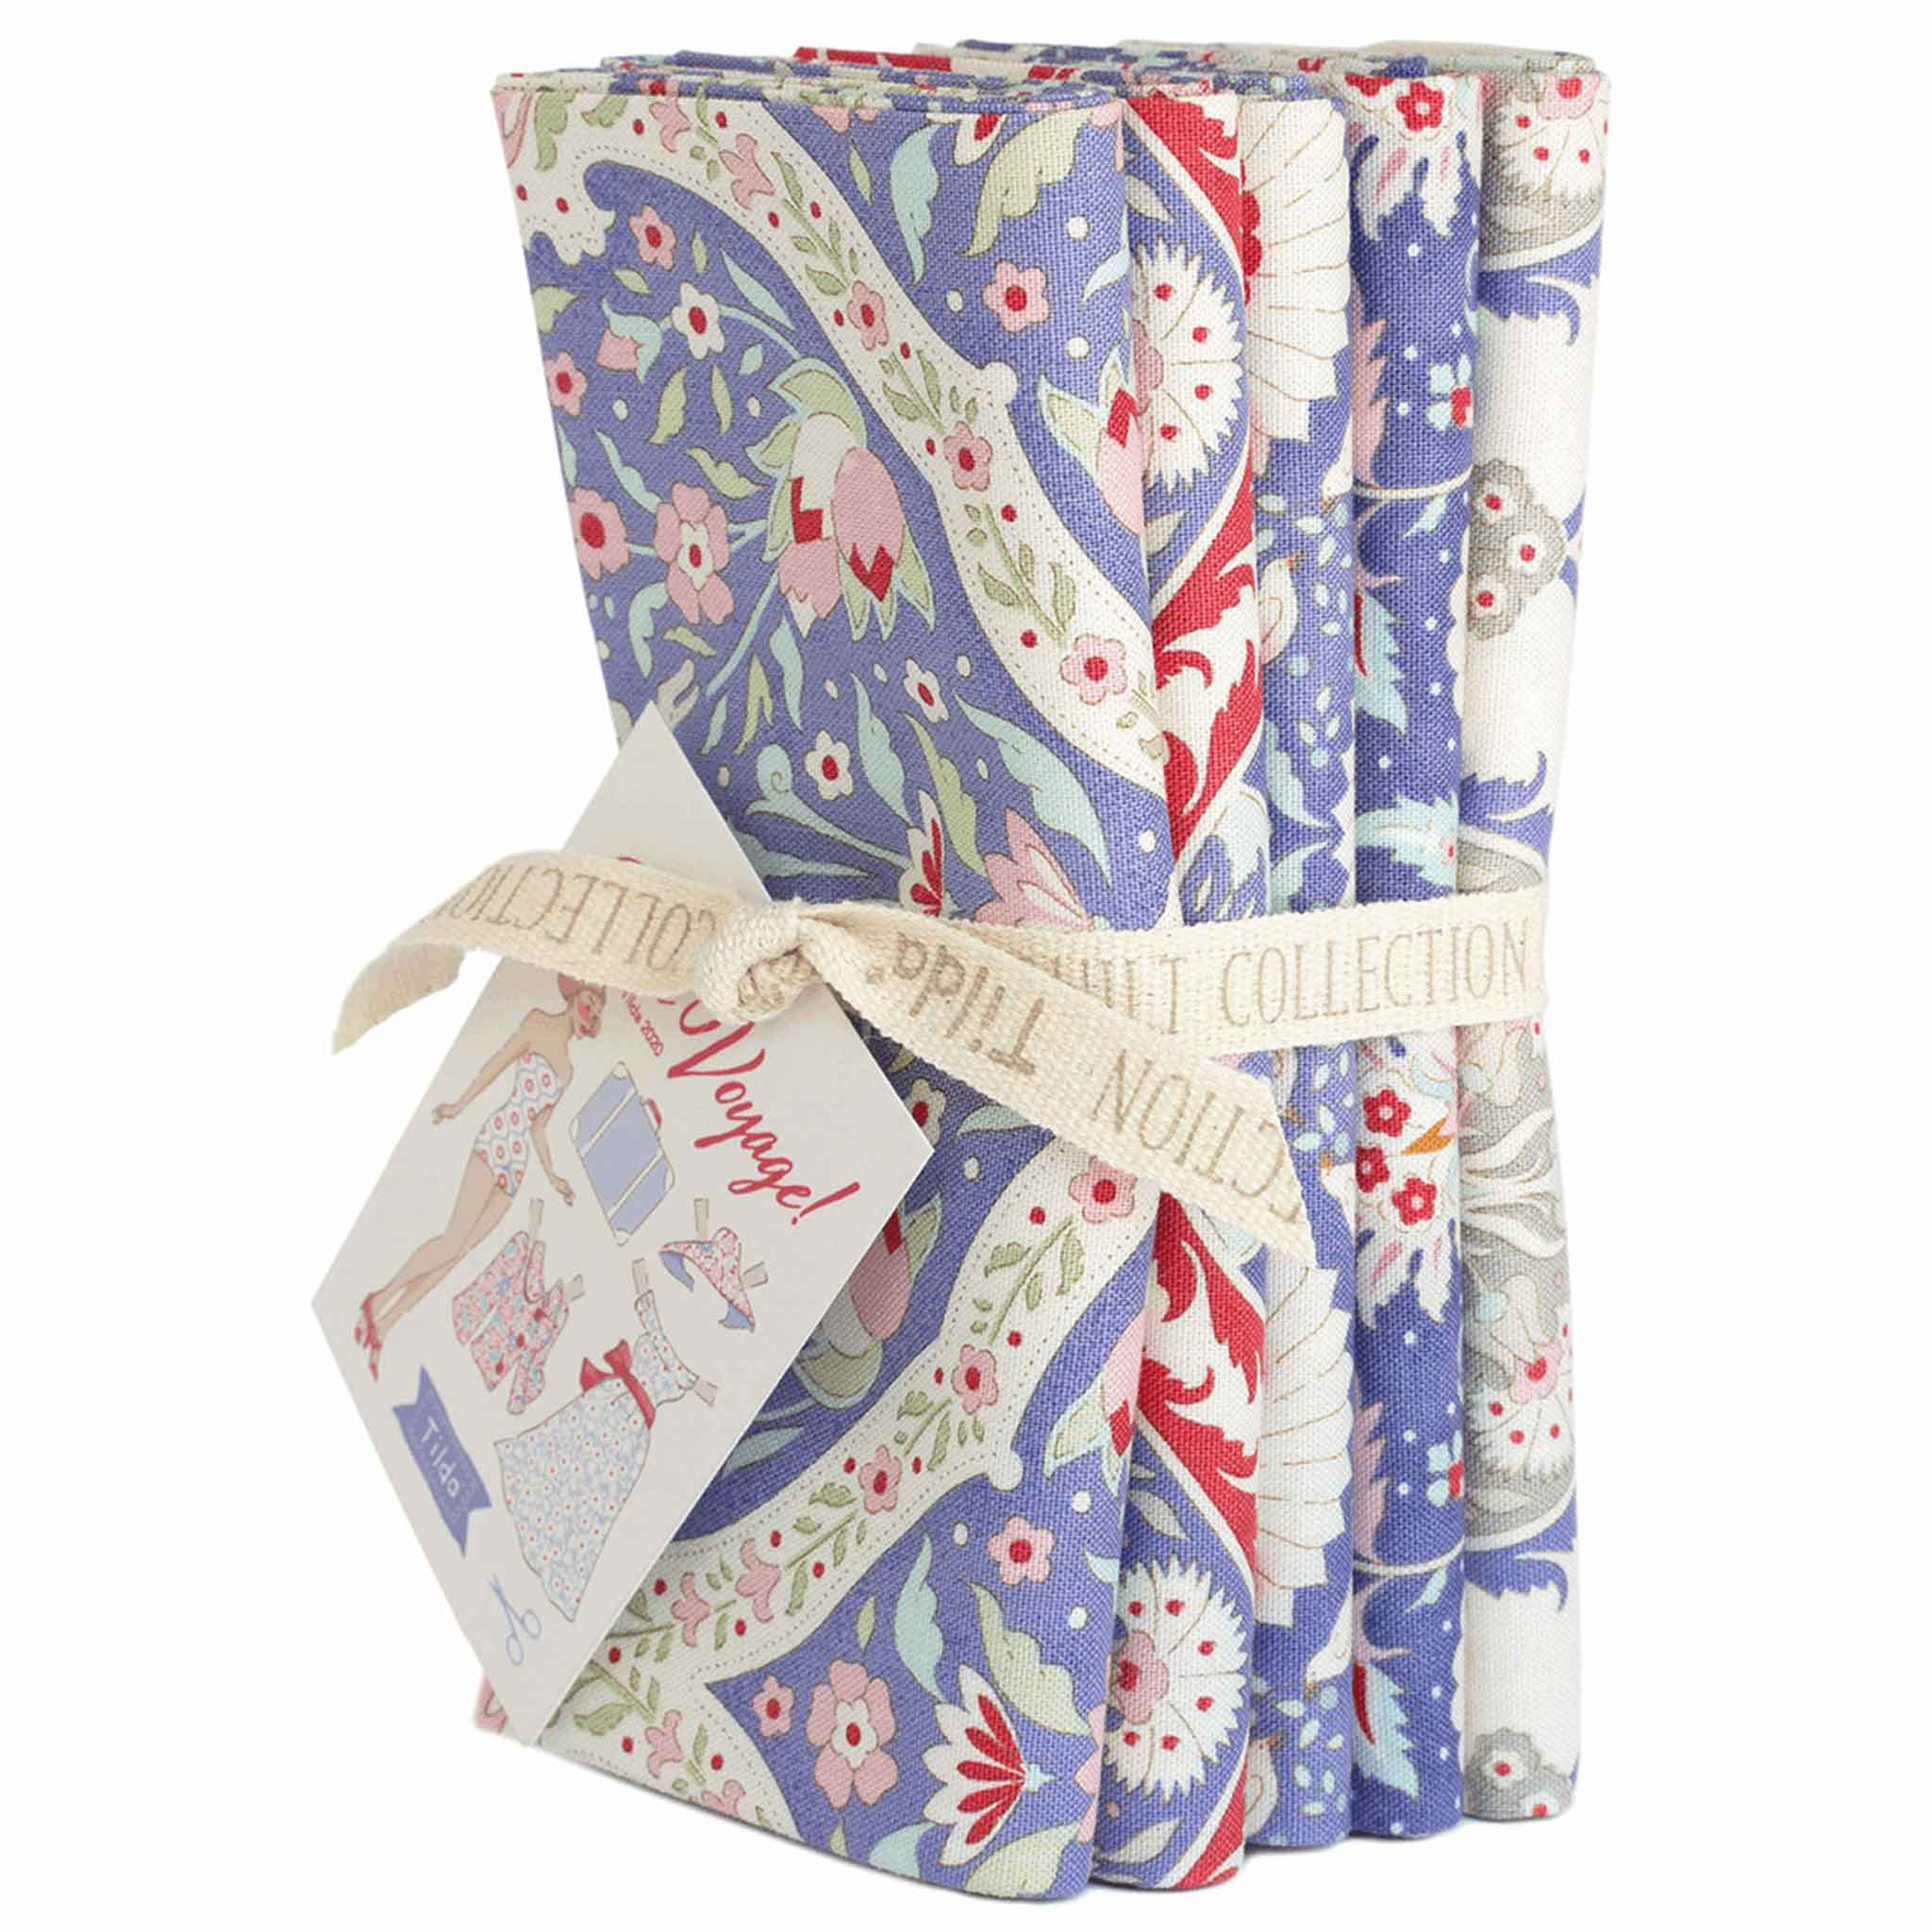 Tilda Blue Bon Voyage Fat Quarter Bundle, Tilda 300072, 5 Cotton Fat Quarters, 50 cm x 55 cm